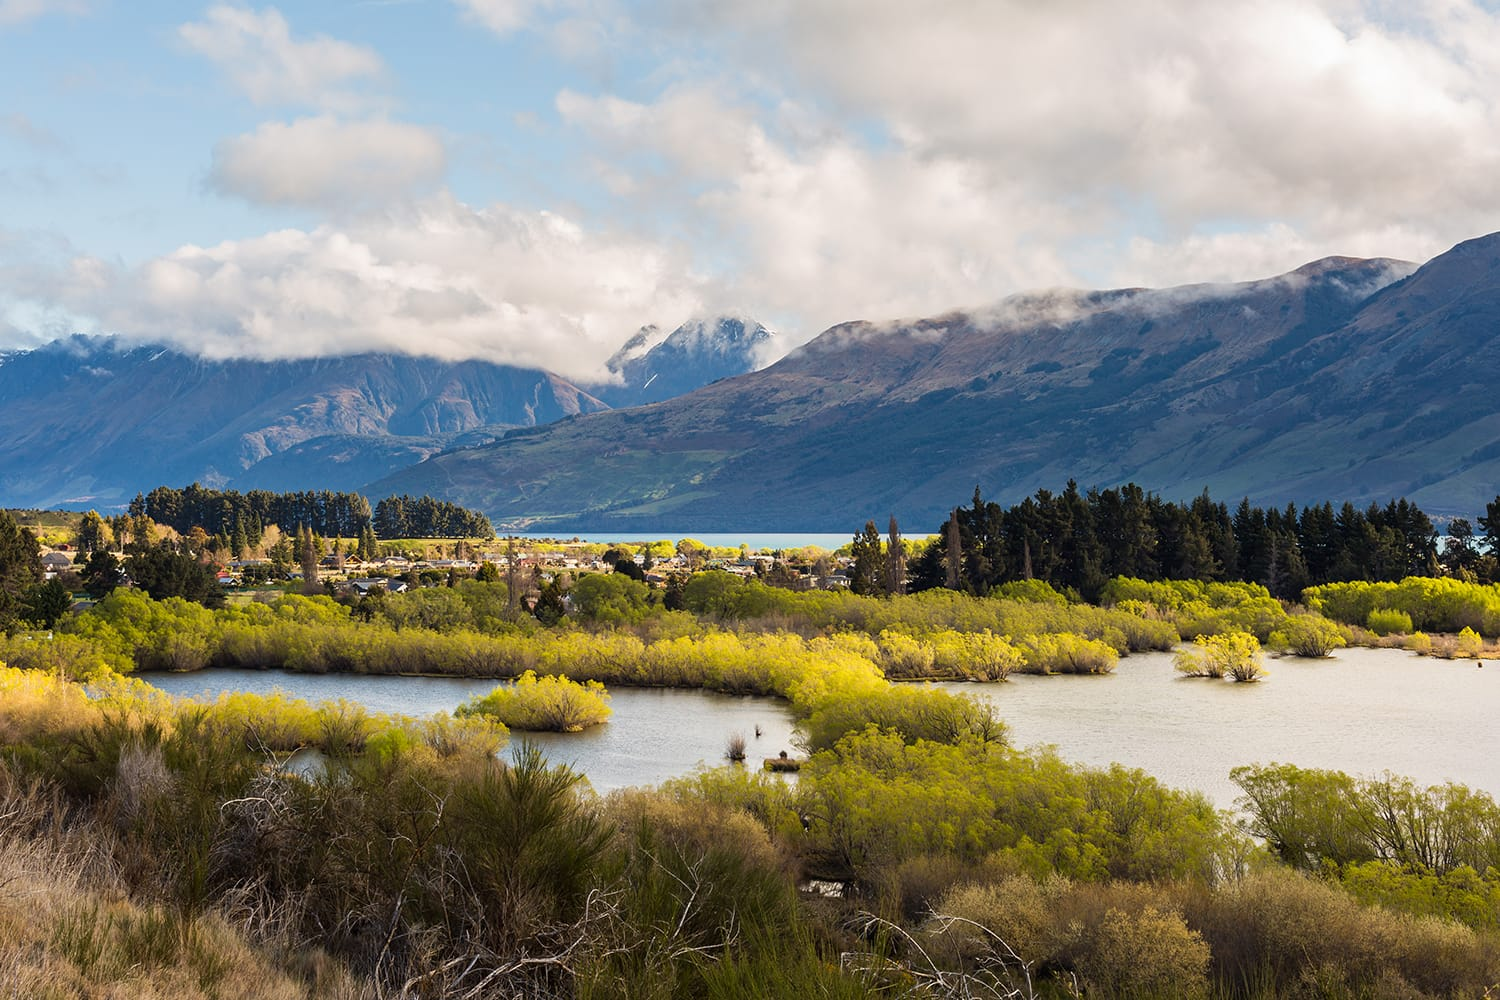 Wetland swamp in glacial Rees Dart river valley in Glenorchy, New Zealand